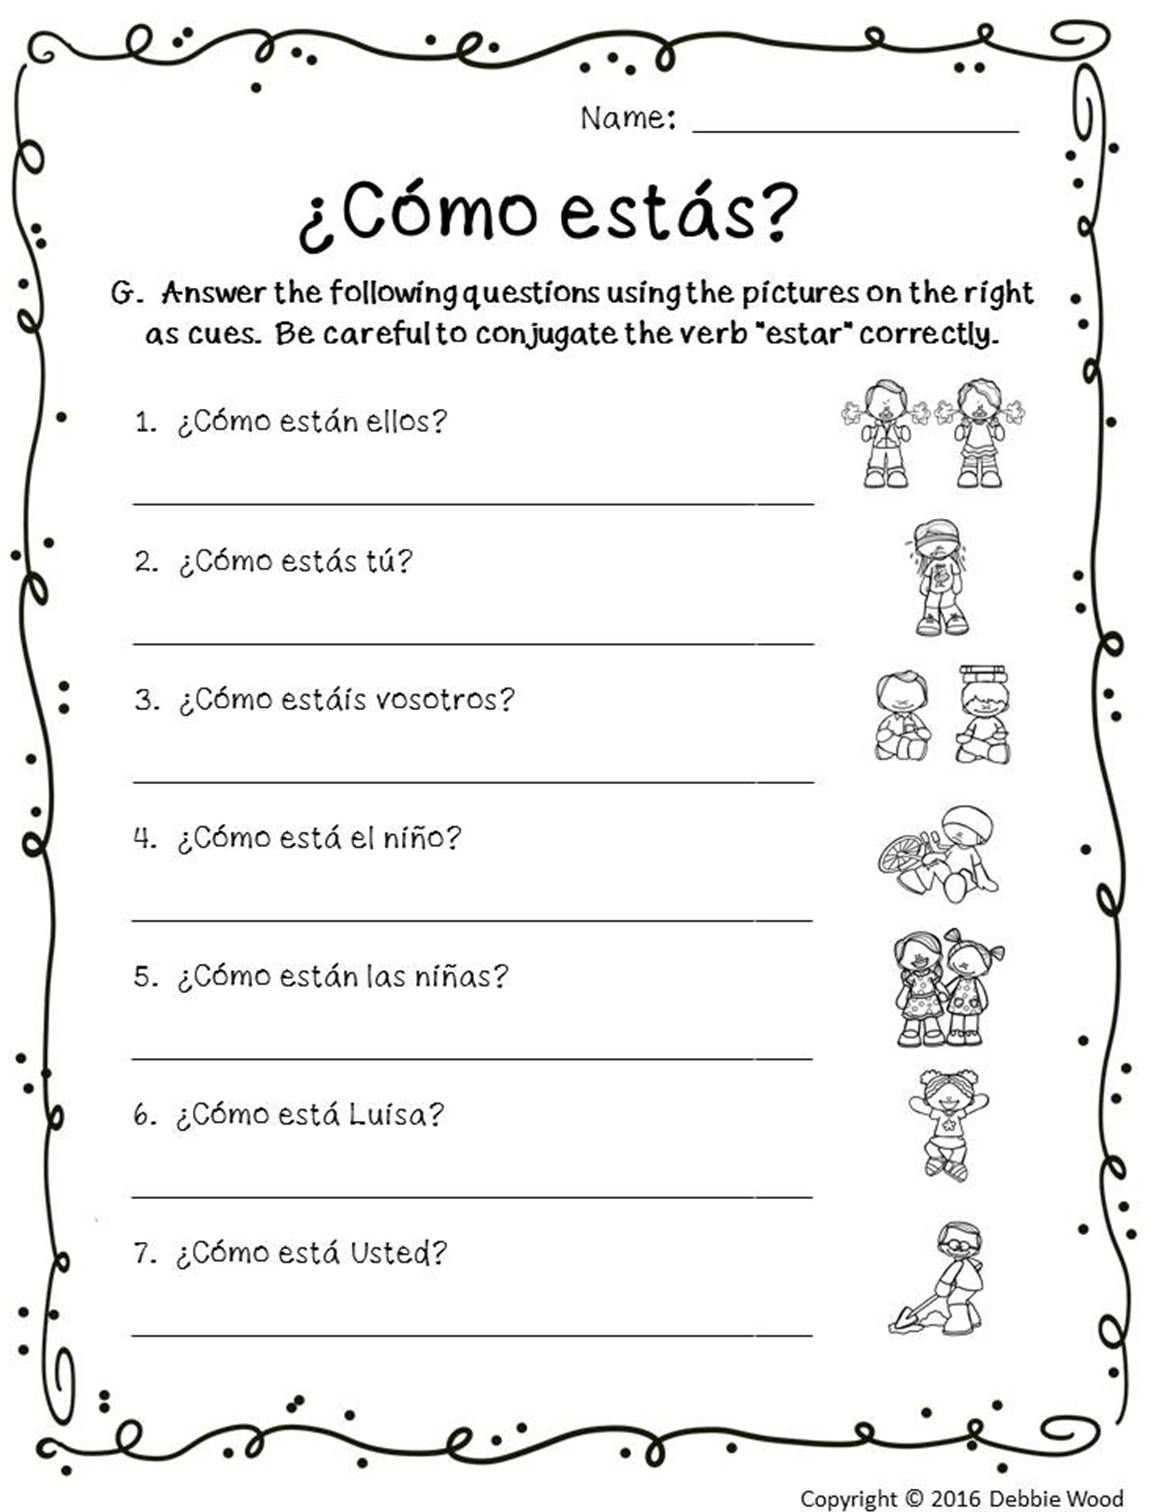 spanish verb estar posters and worksheets classroom d cor debbie wood spanish resources. Black Bedroom Furniture Sets. Home Design Ideas